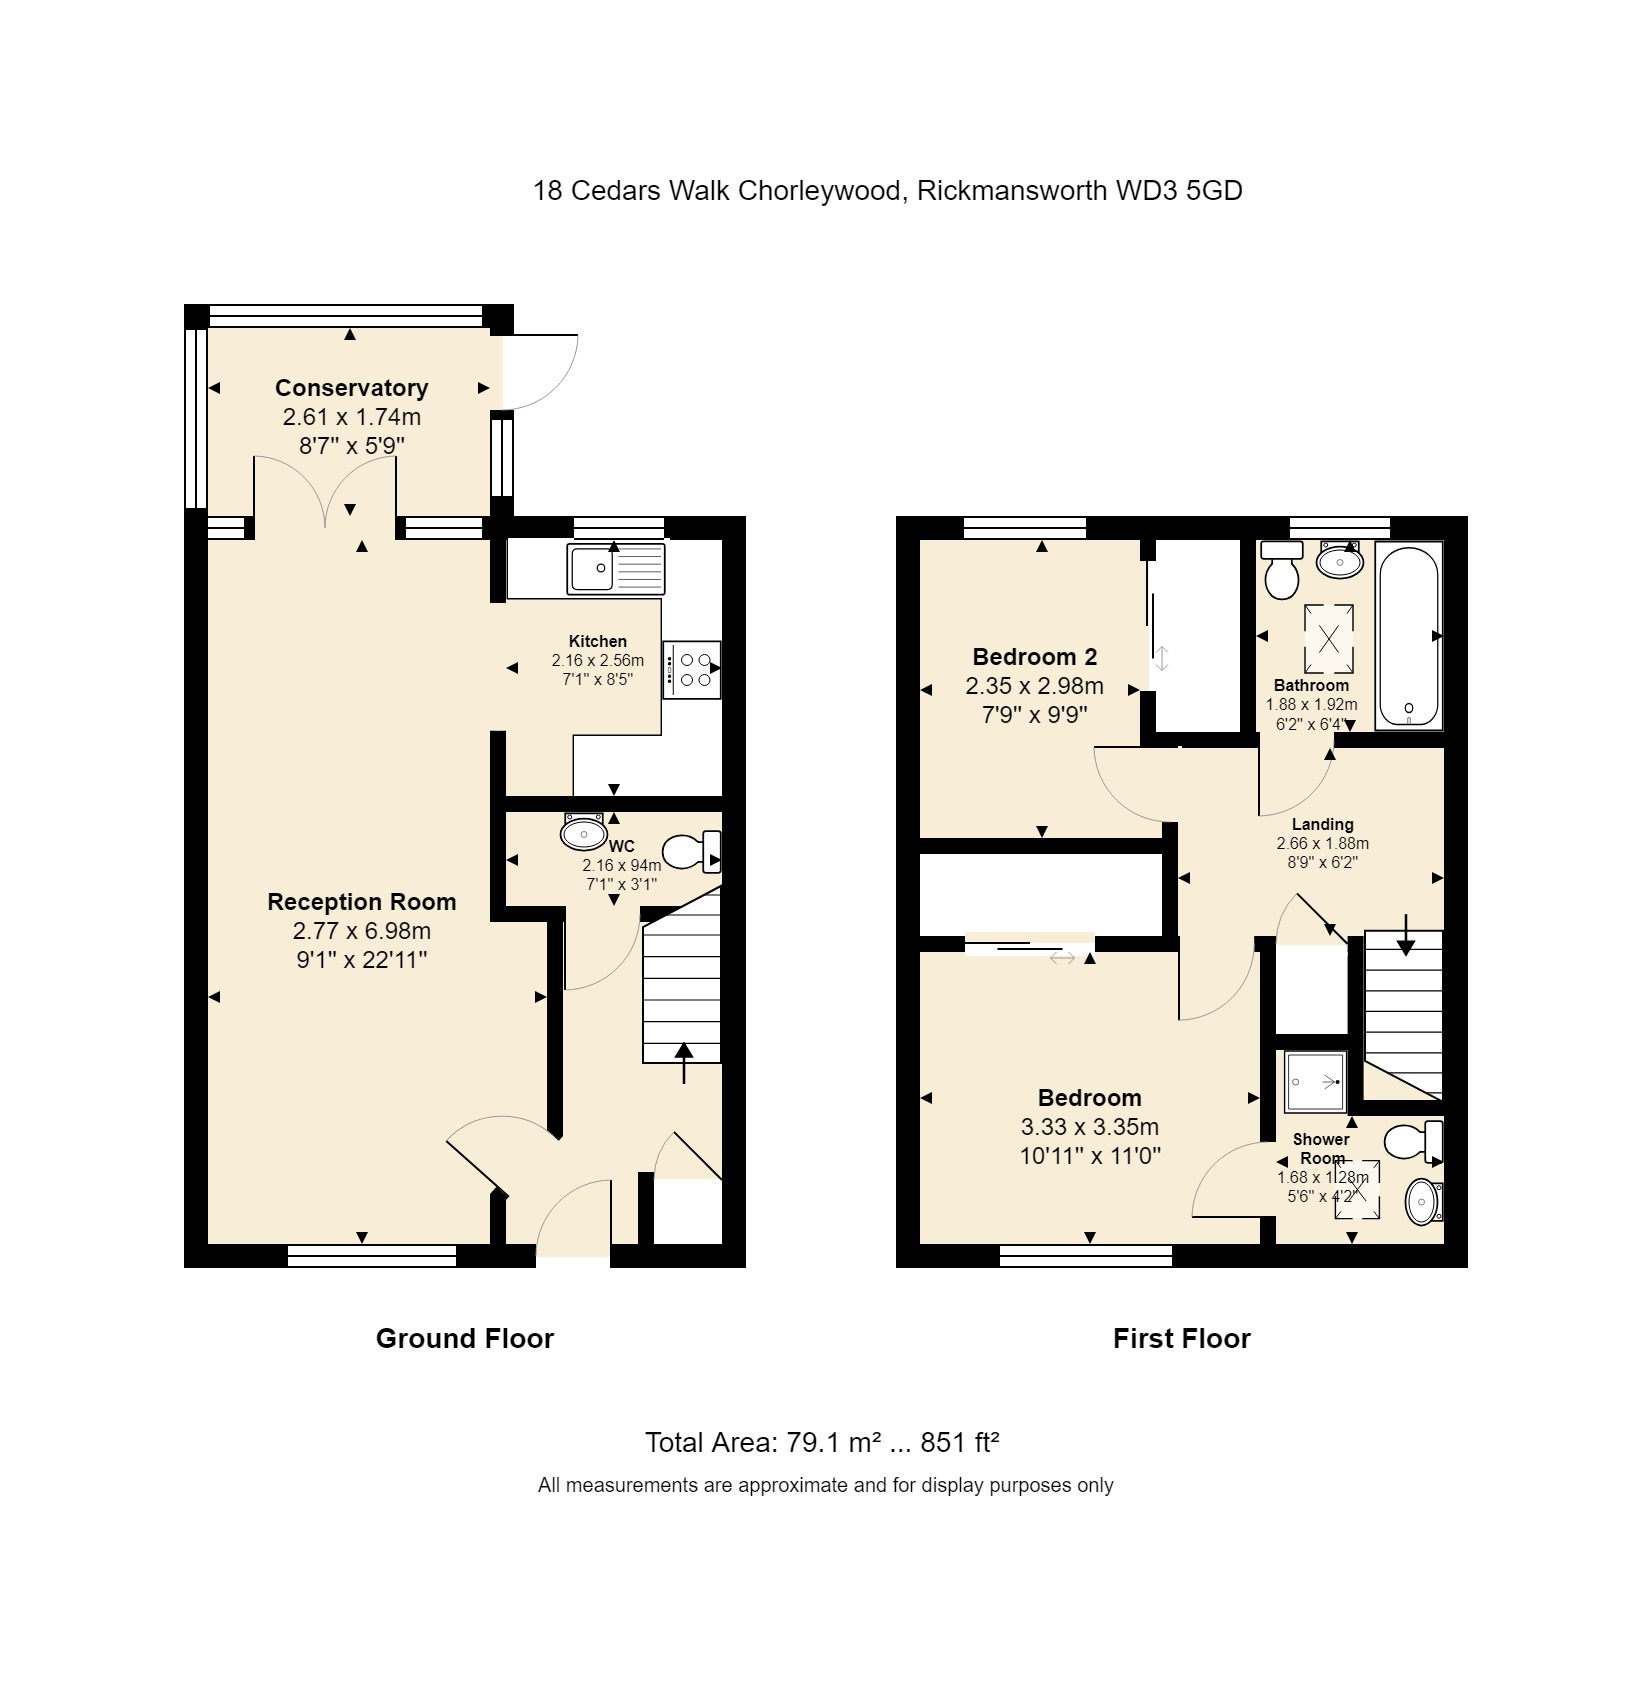 18 Cedars Walk Floorplan